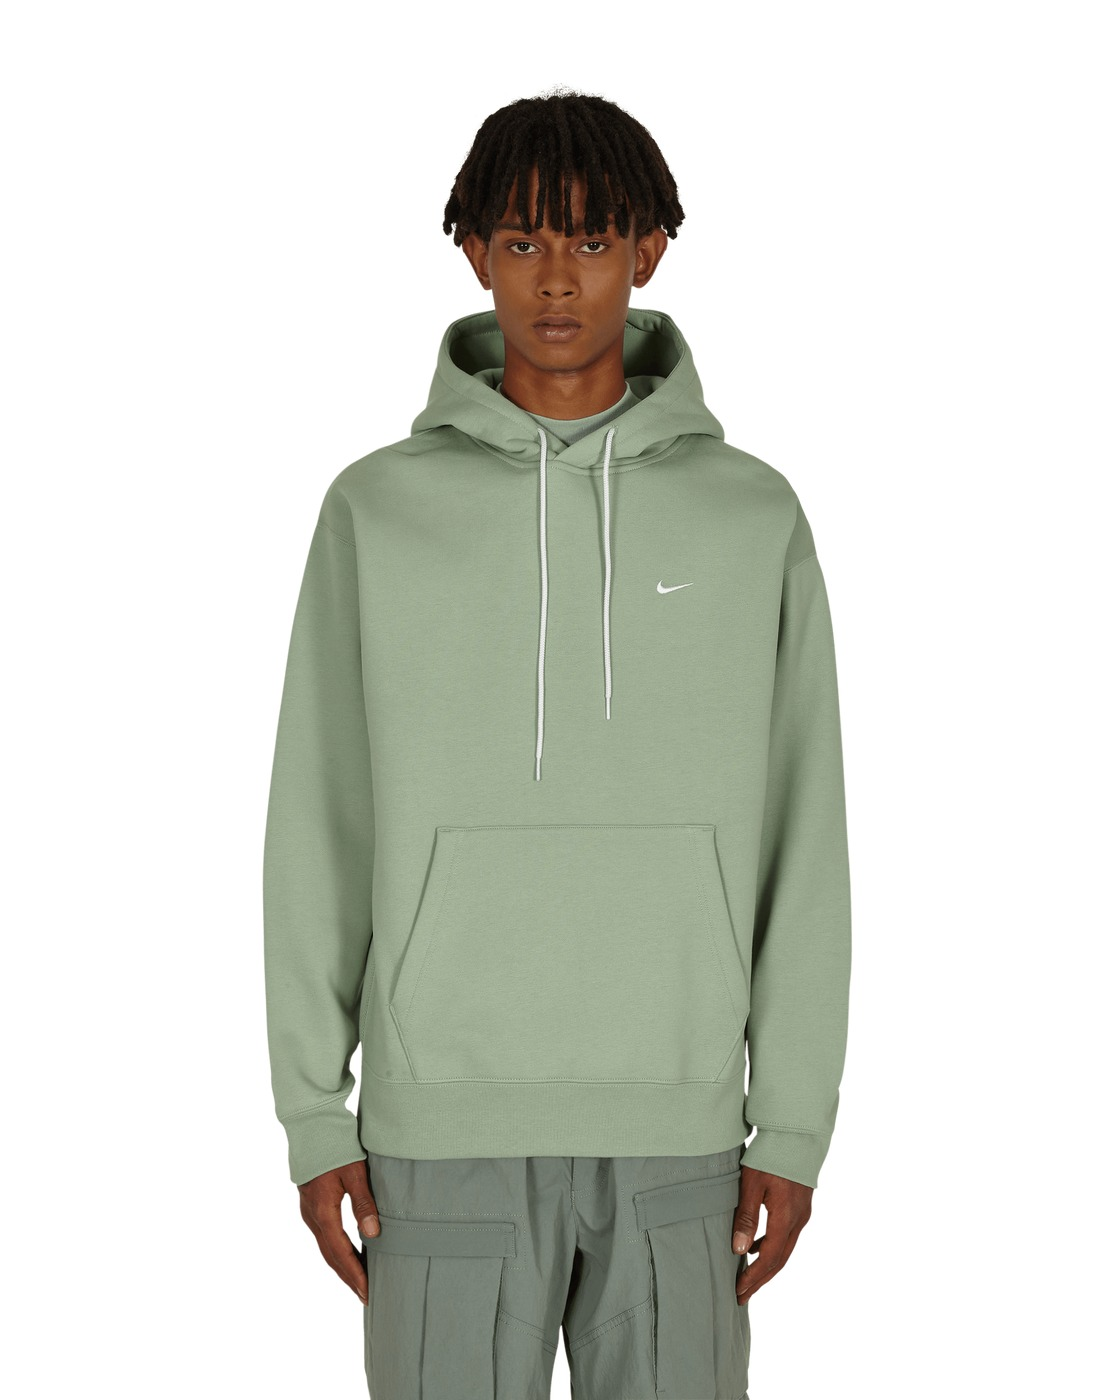 Nike Special Project Logo Hooded Sweatshirt Steam/White